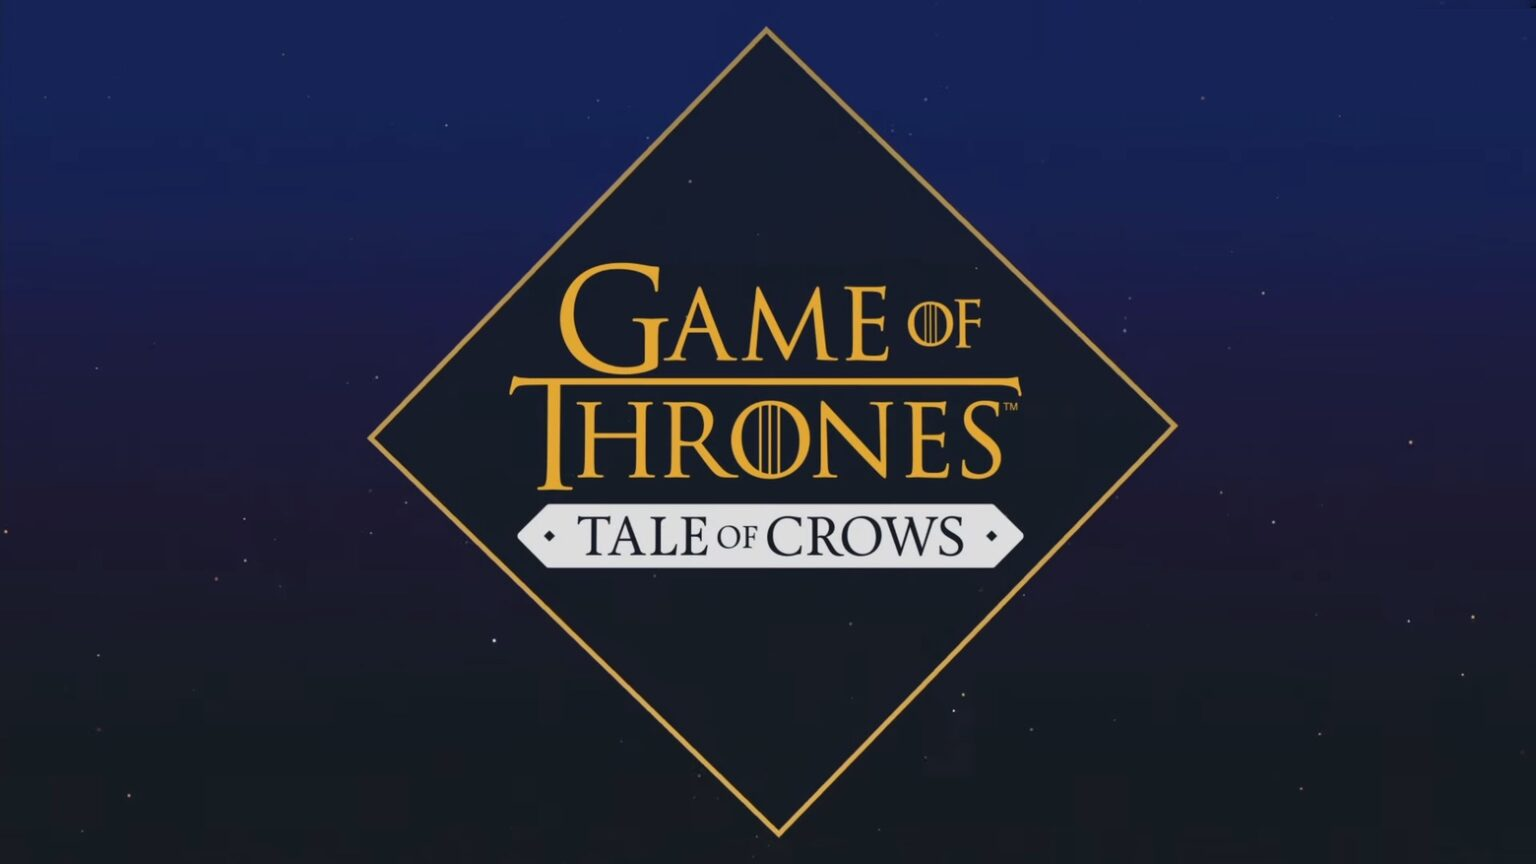 Try too pretend Season 8 didn't happen in 'Game of Thrones: Tale of Crows'